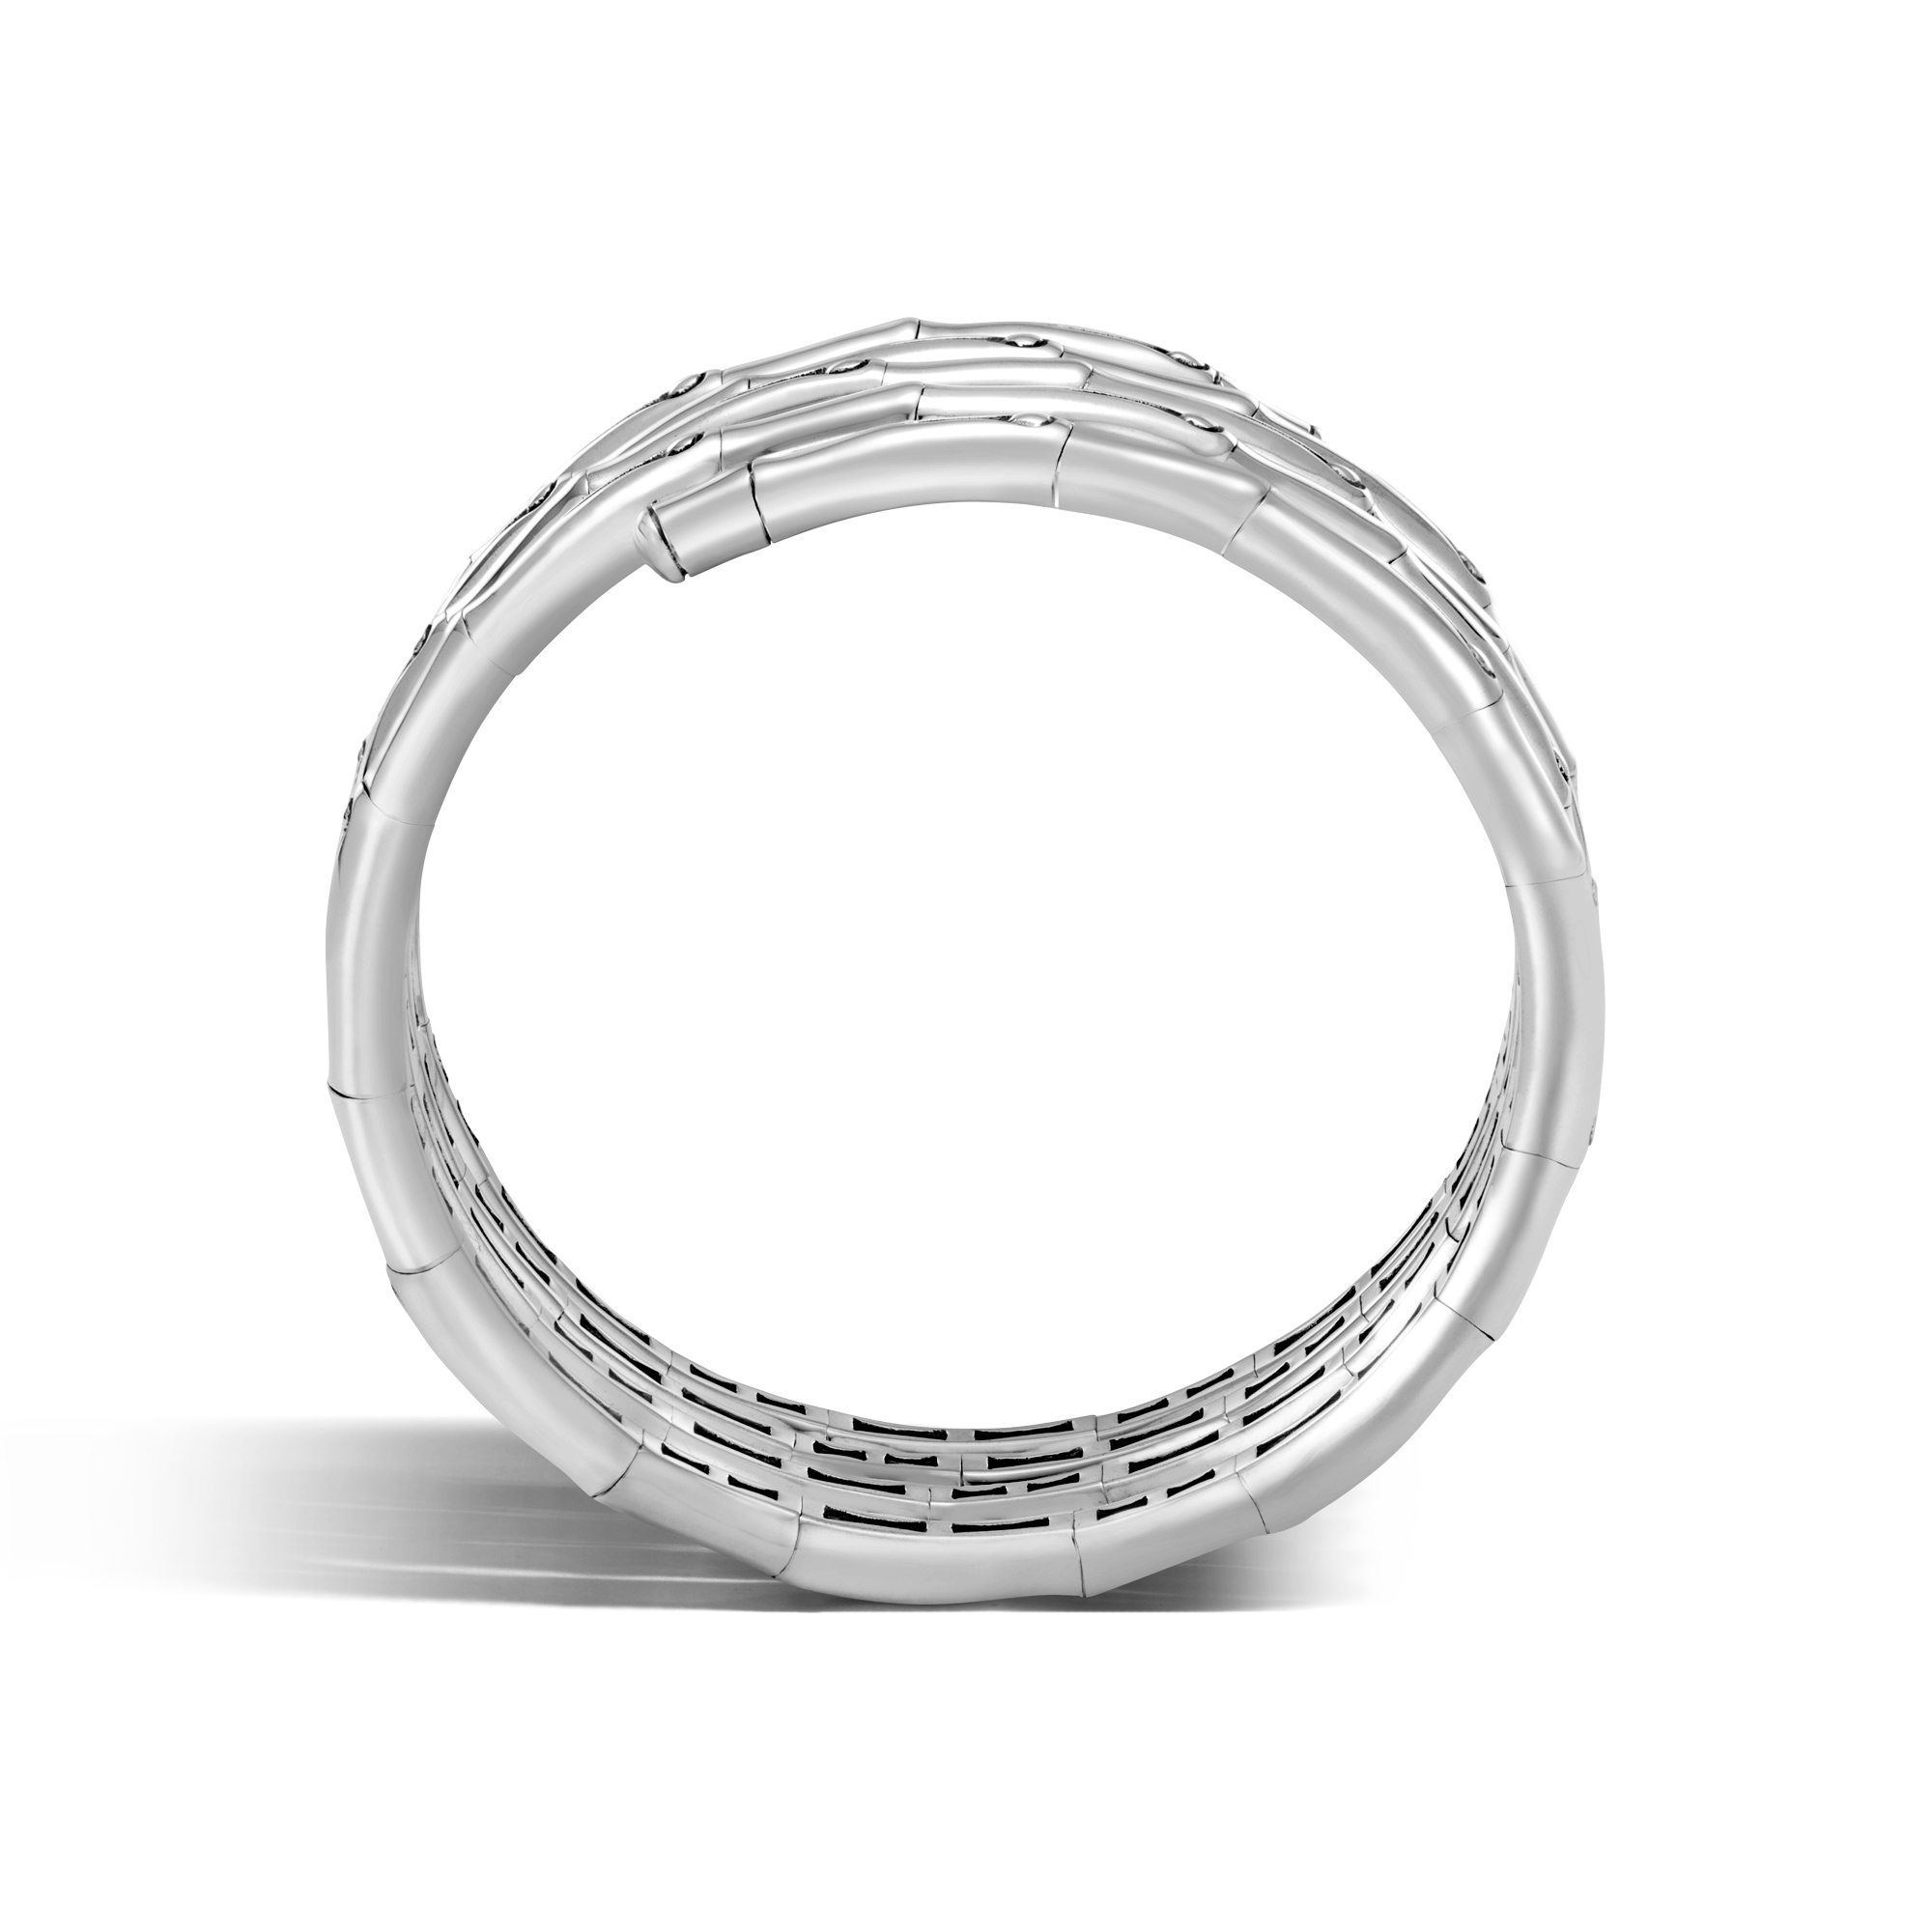 Bamboo Double Coil Bracelet in Brushed Silver, , large